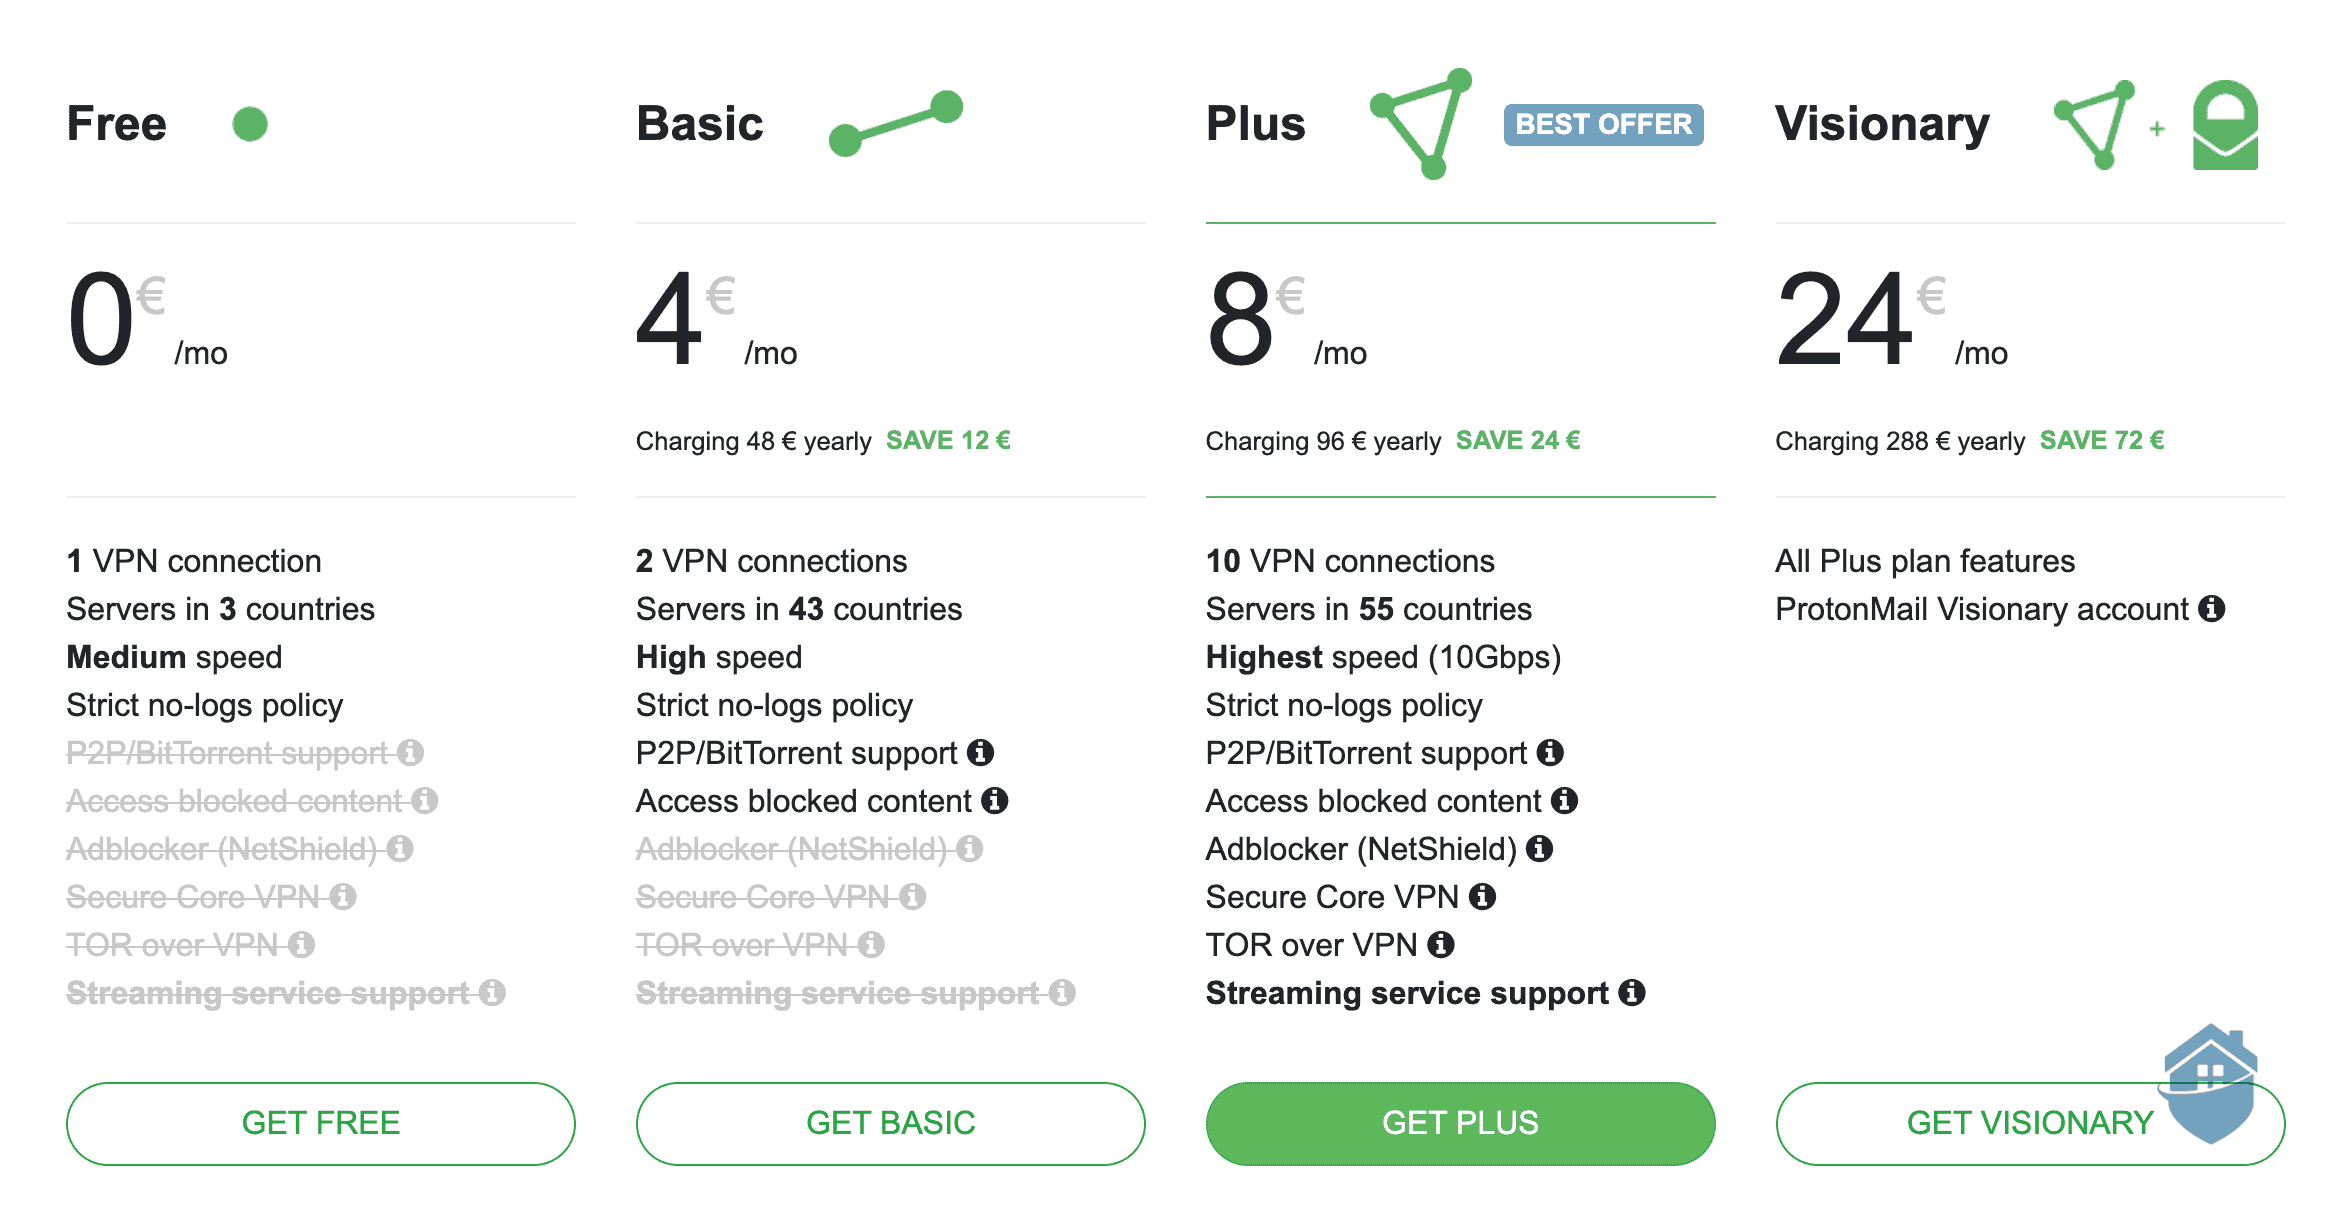 Are you a VPN visionary? If not, stick with the value-for-money Proton Plus plan.